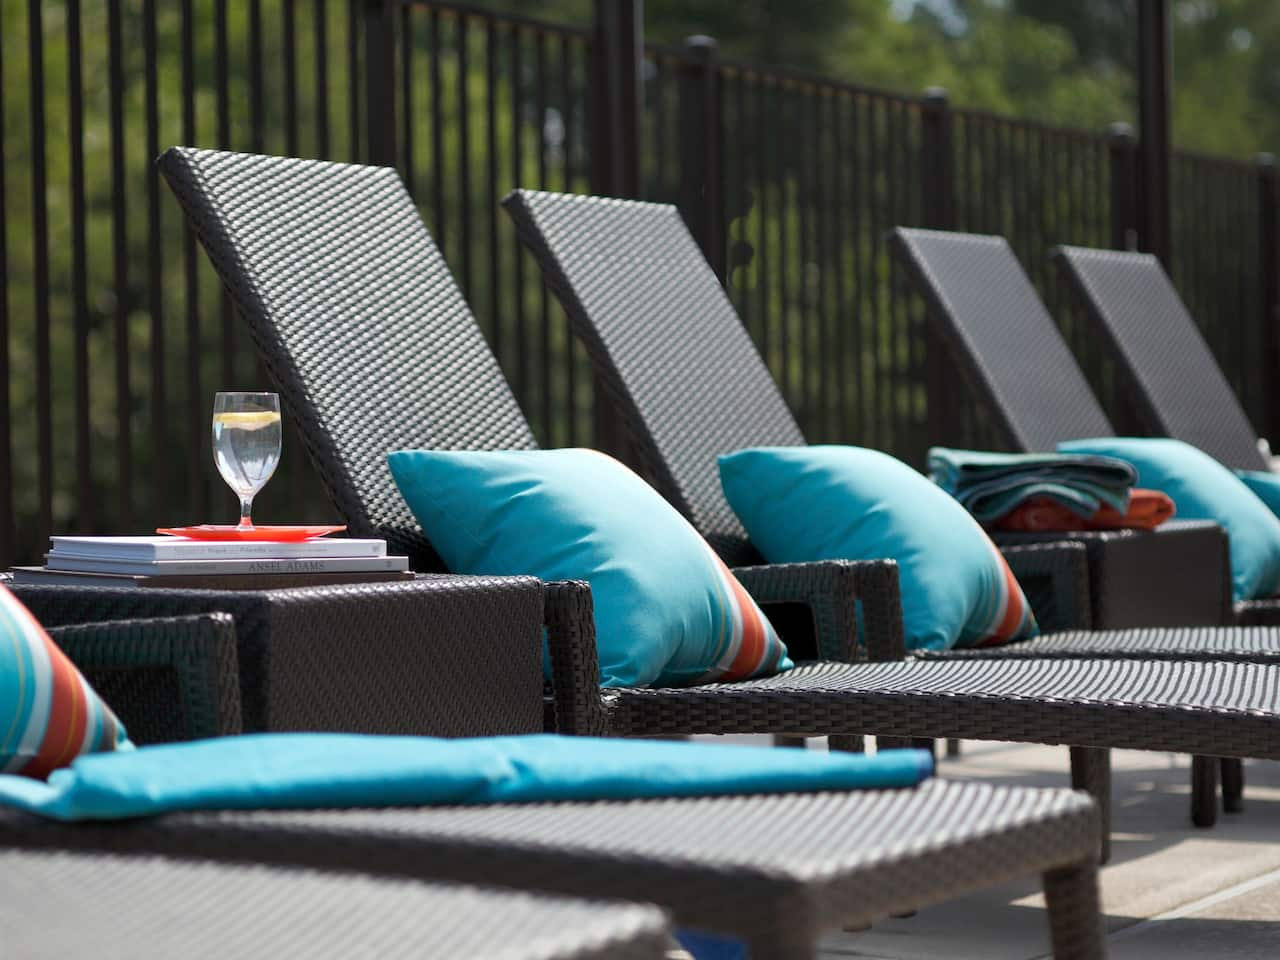 Extended Stay Hotel near Raleigh Durham Airport | Hyatt House